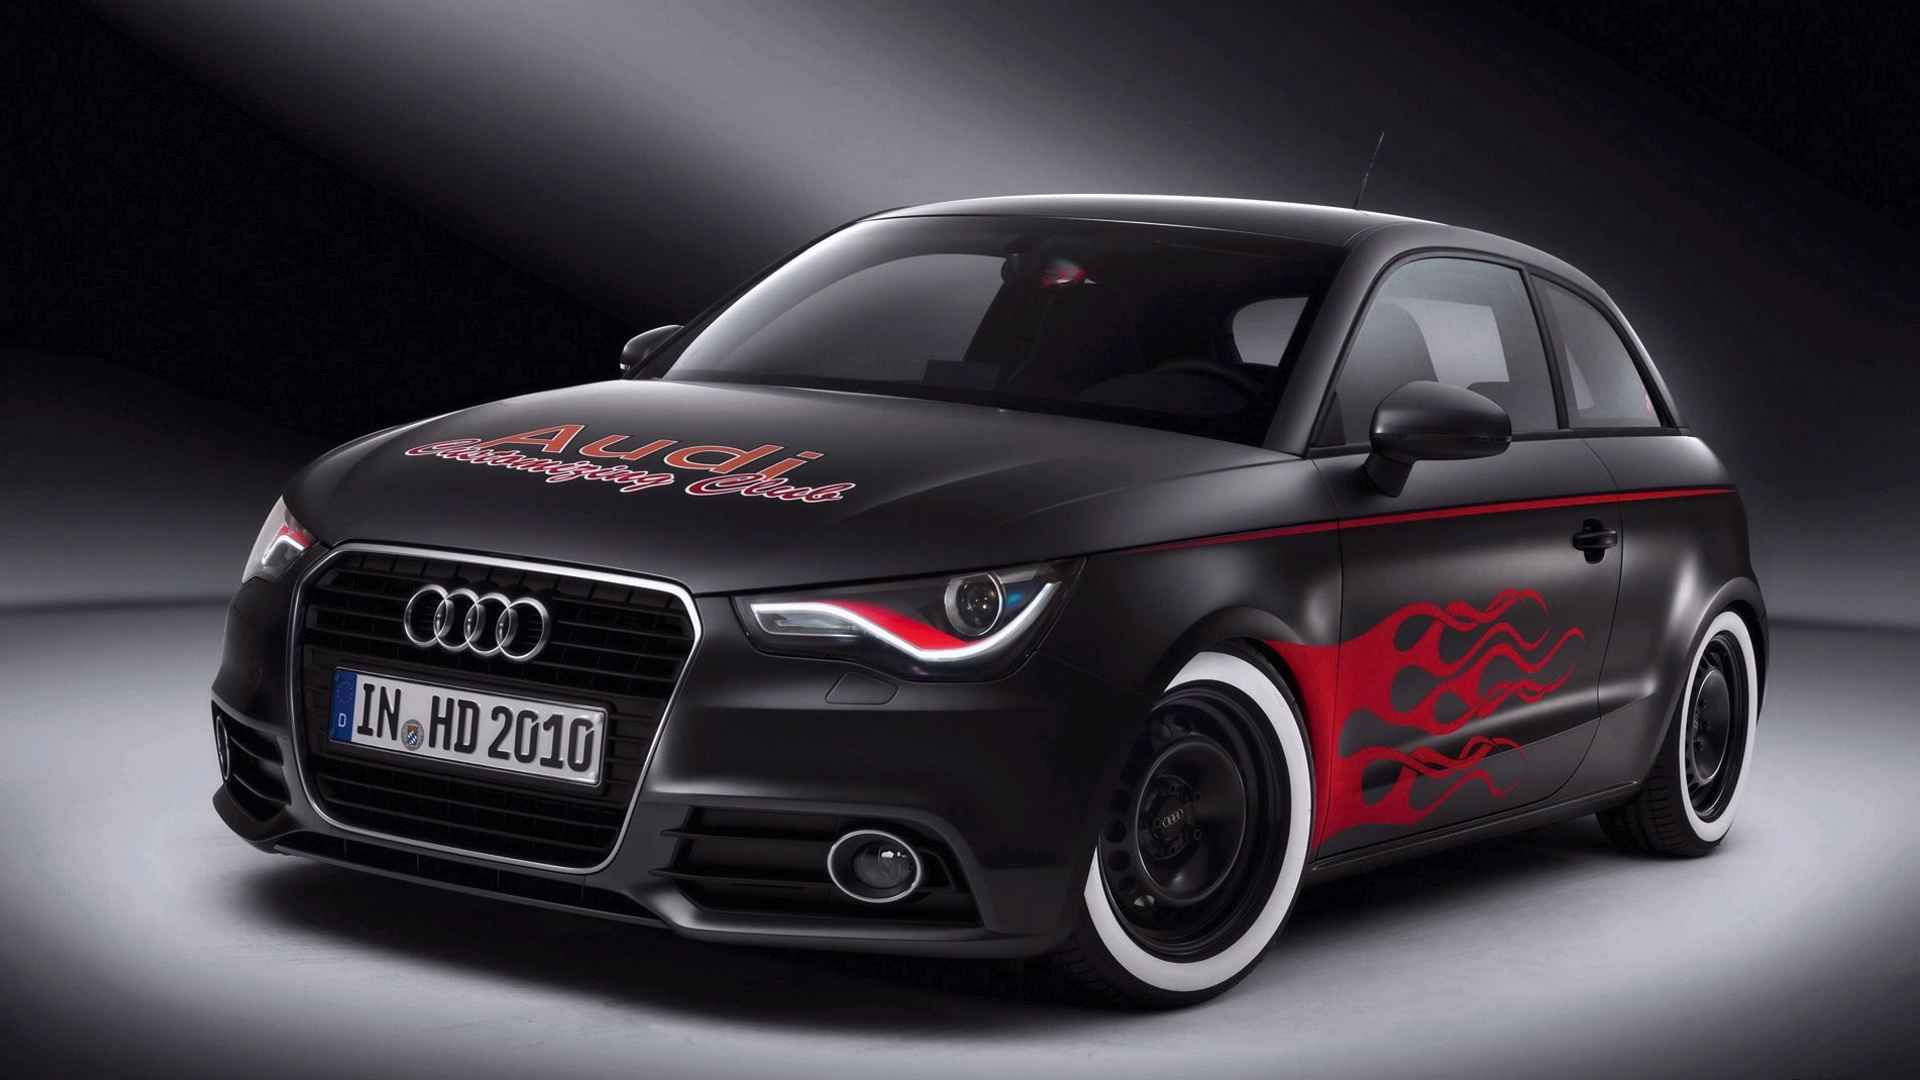 hd images of audi cars